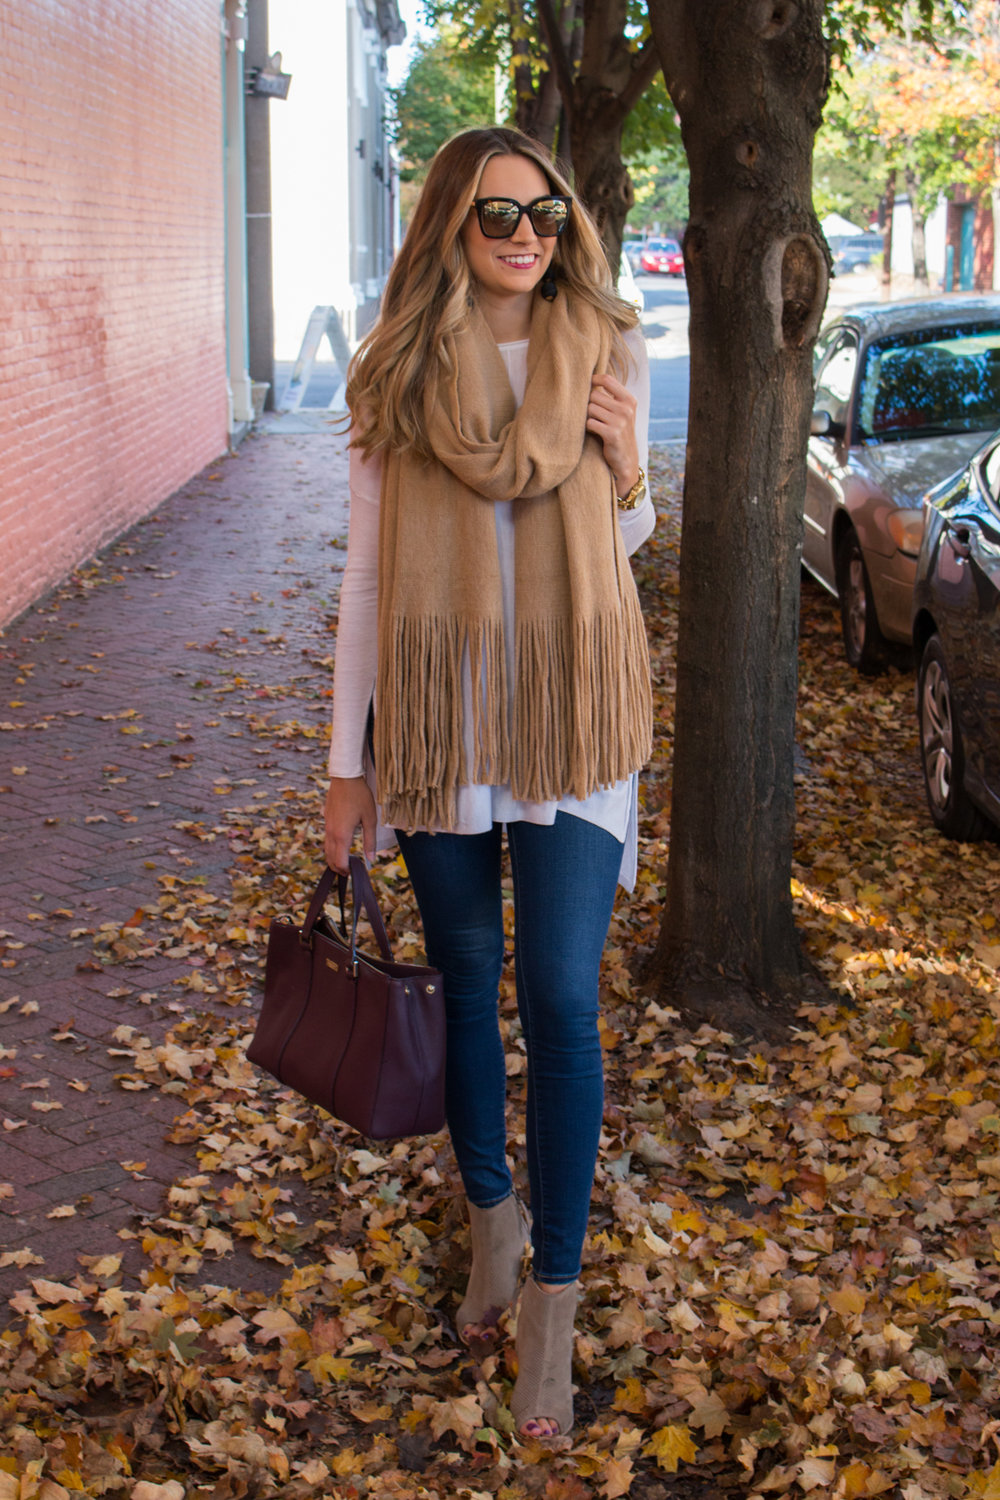 dress - Have must accessories for fall video